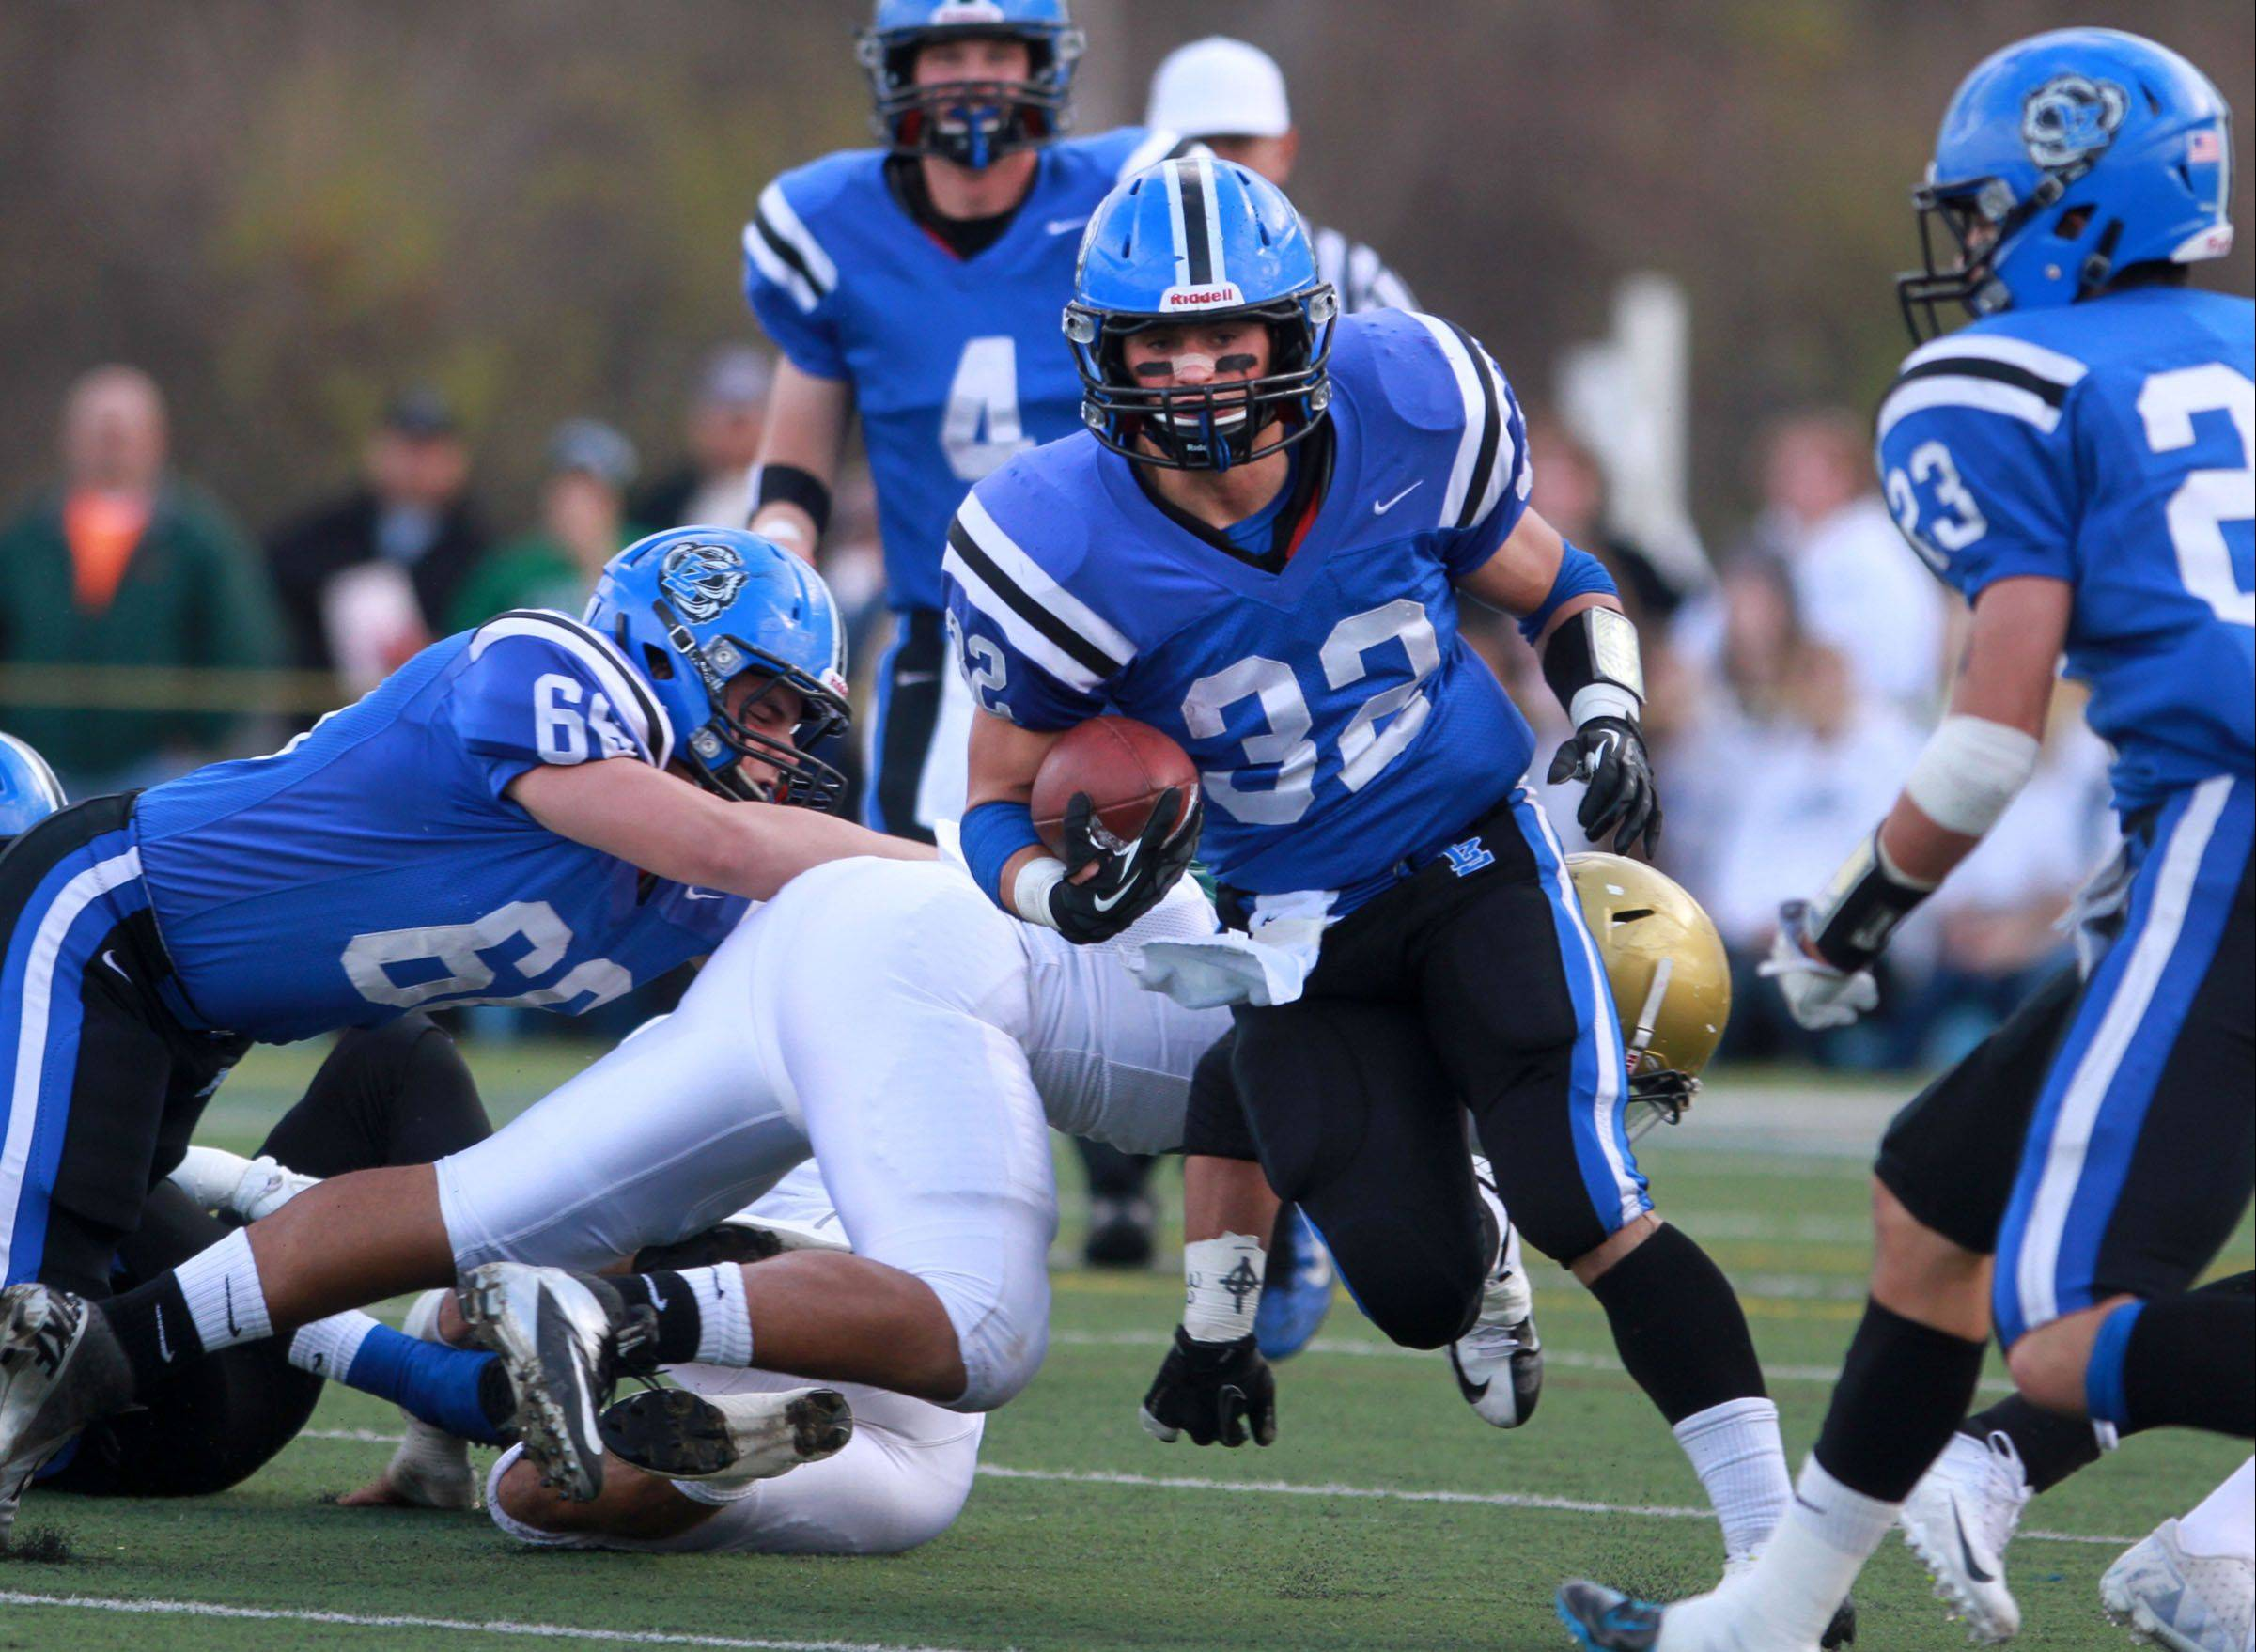 Lake Zurich running back Connor Schrader finds a hole against Rockford Boylan in last weekend's Class 7A state quarterfinal game.